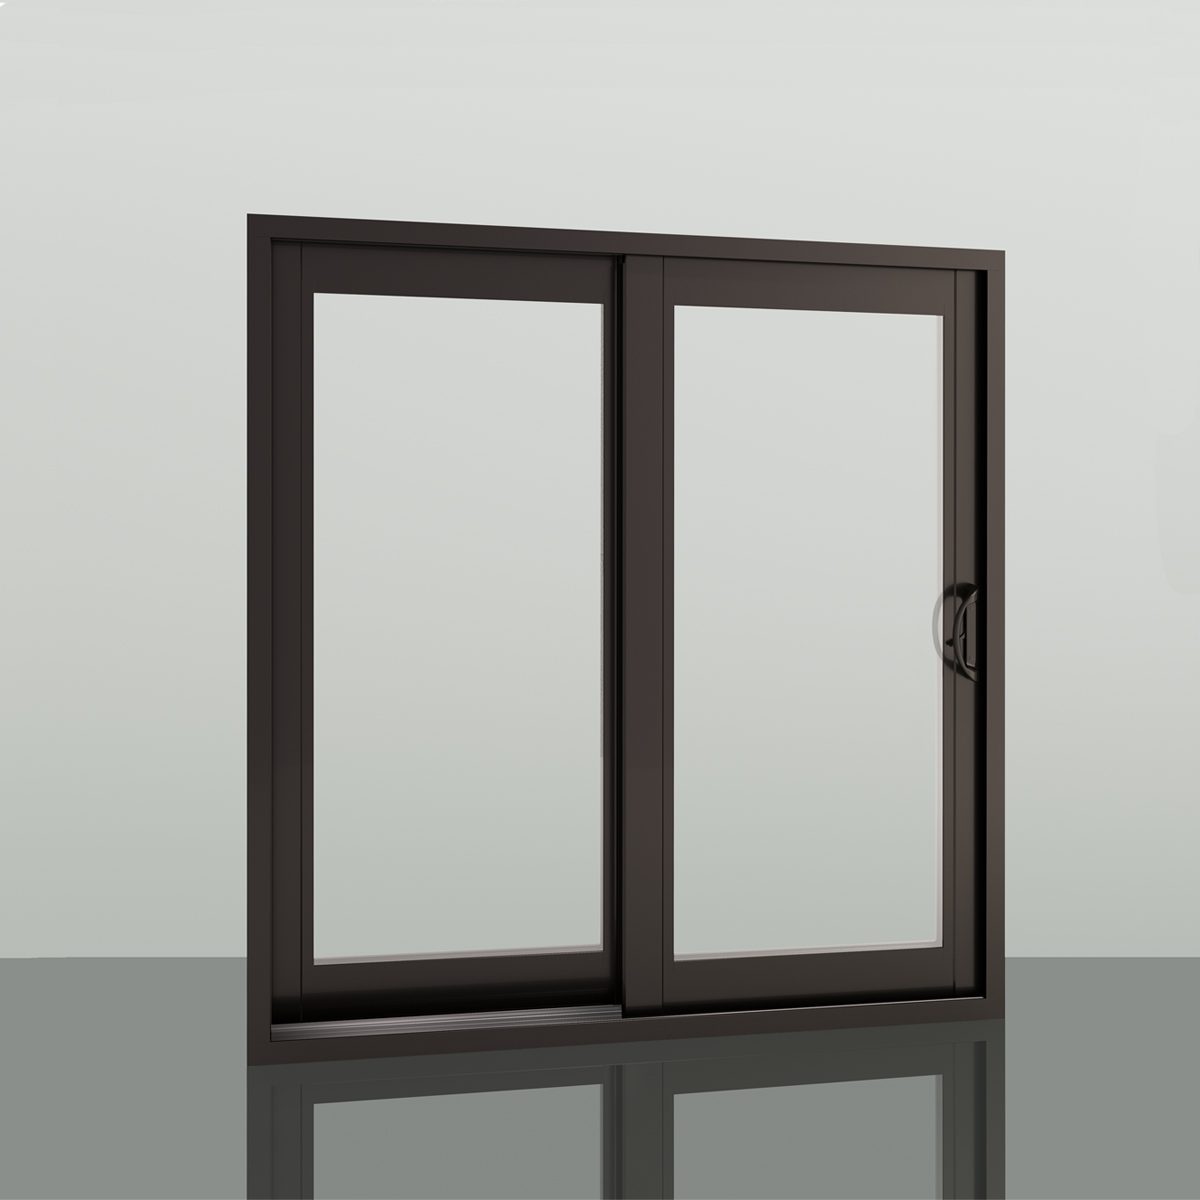 Products and Product Information | MI Windows and Doors